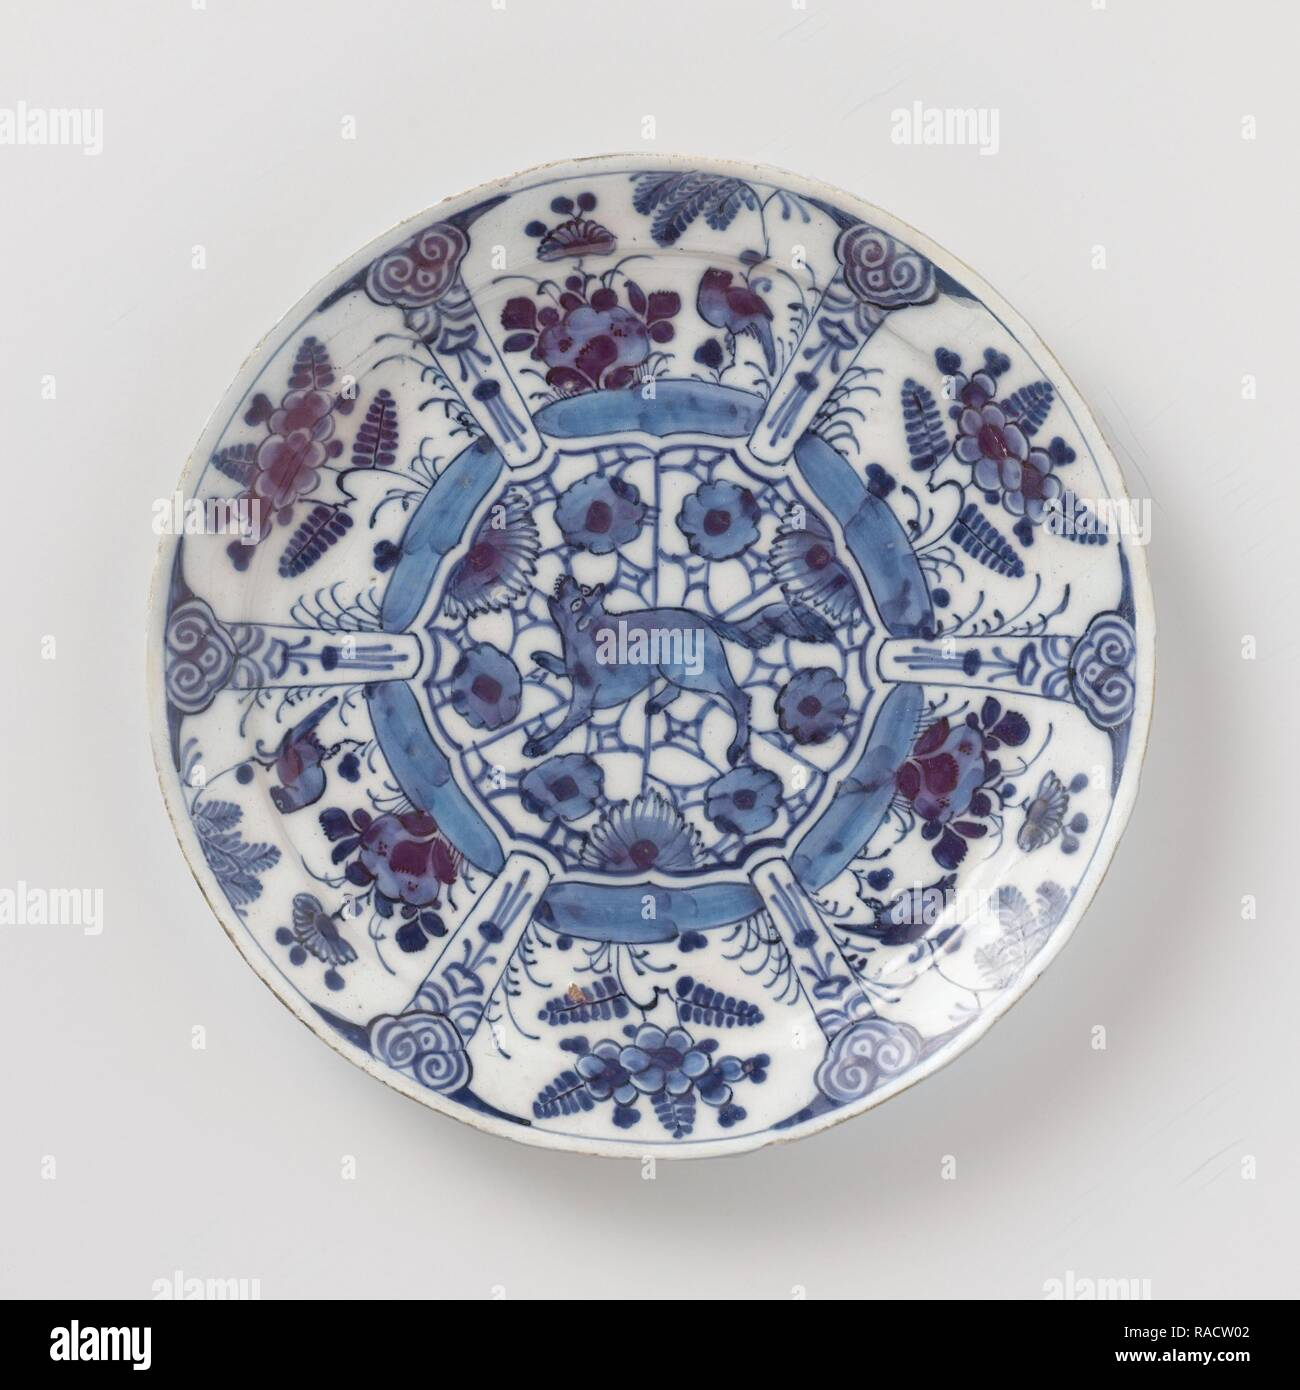 Blue and white Delft pottery, decorated with plants and birds and a growling wolf or fox in the middl. Reimagined - Stock Image